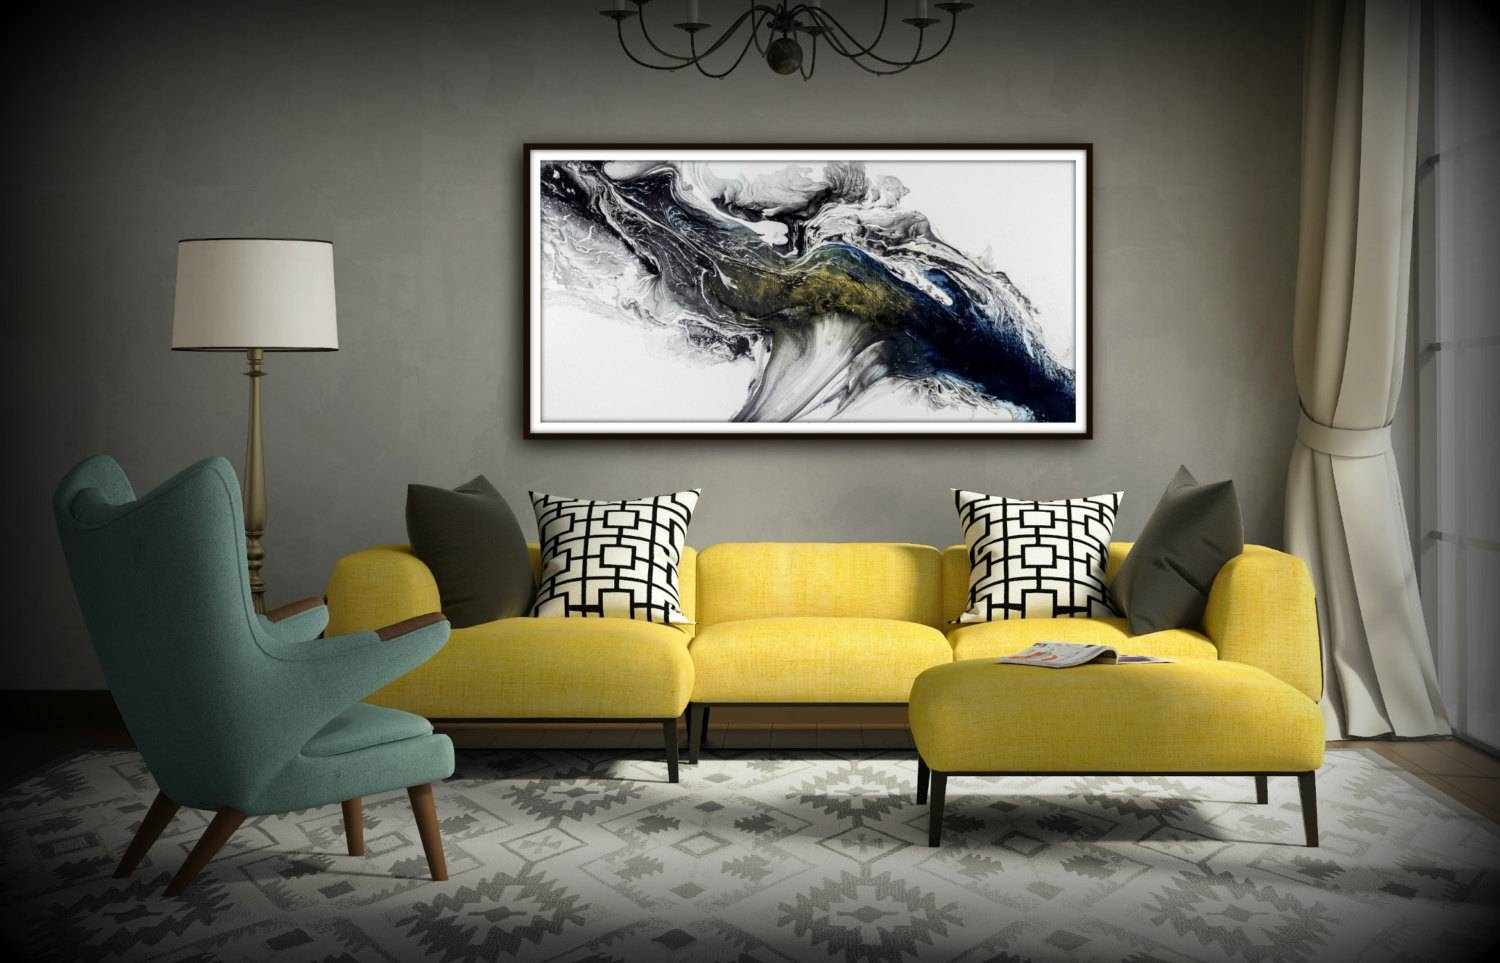 Black And White Wall Art Gift Abstract Painting Print Canvas Within Most Recently Released Large Black And White Wall Art (Gallery 3 of 20)